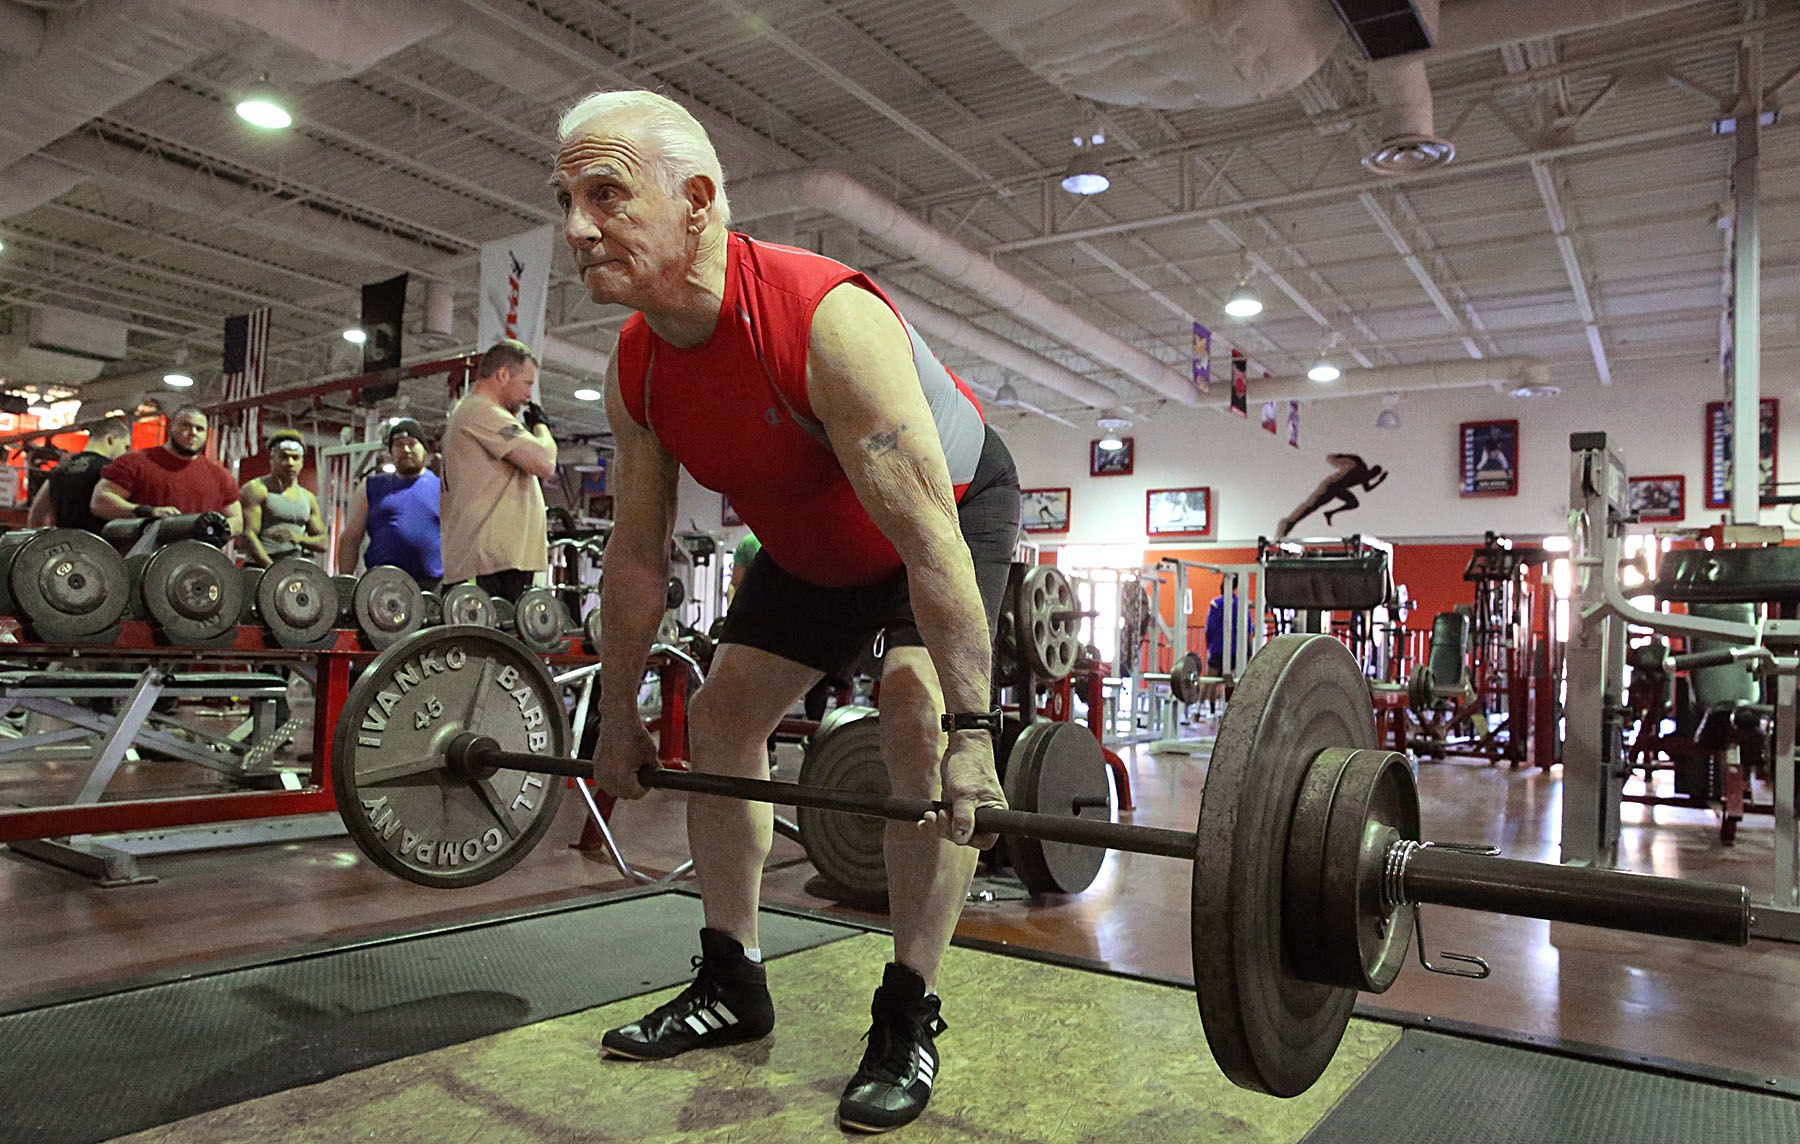 80 year old Powerlifter Ray Ou0027Brien WATCH 80 year old Galloway